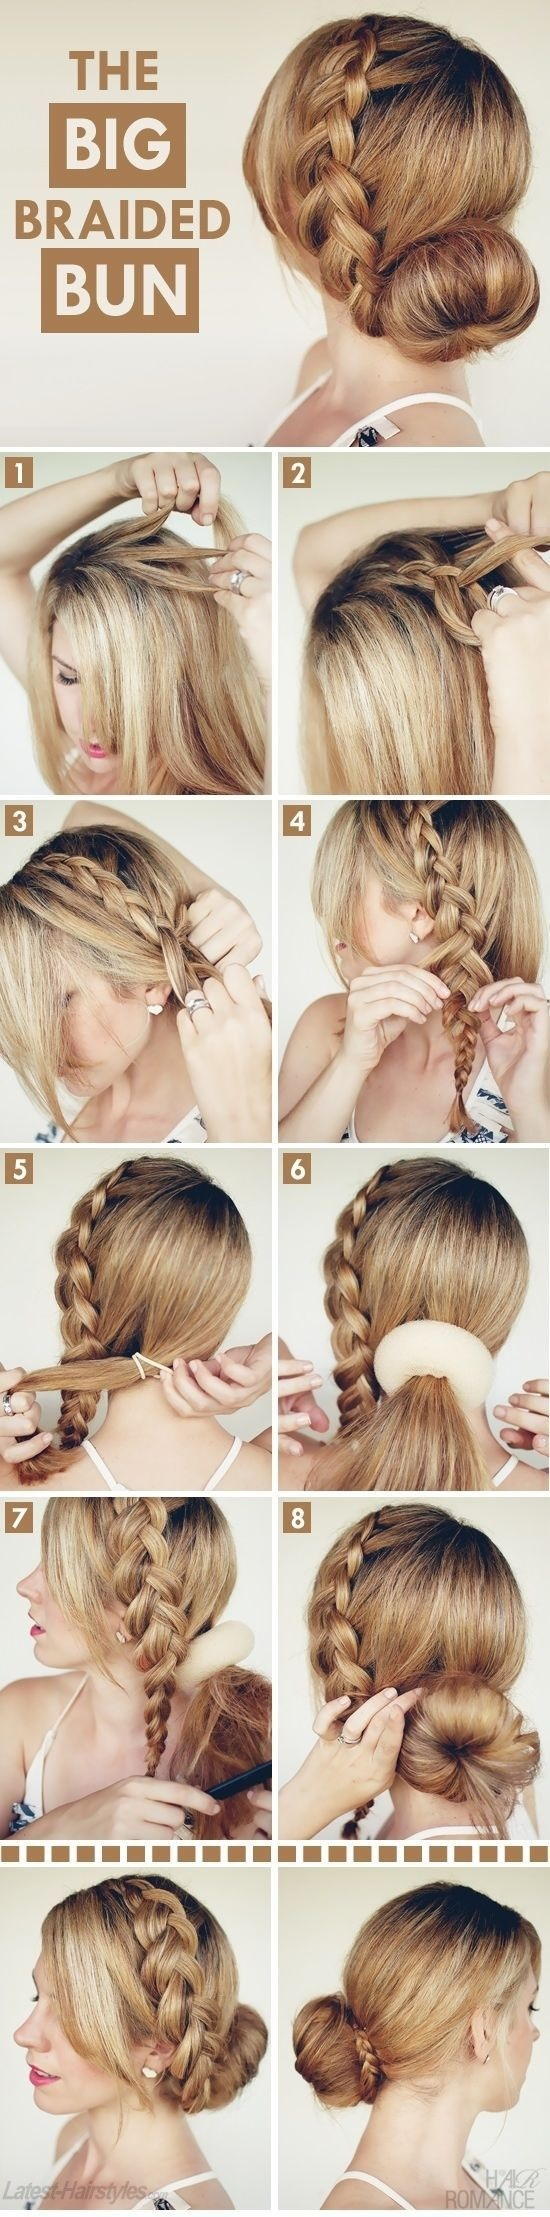 Cute & Easy Hairstyle Tutorials!